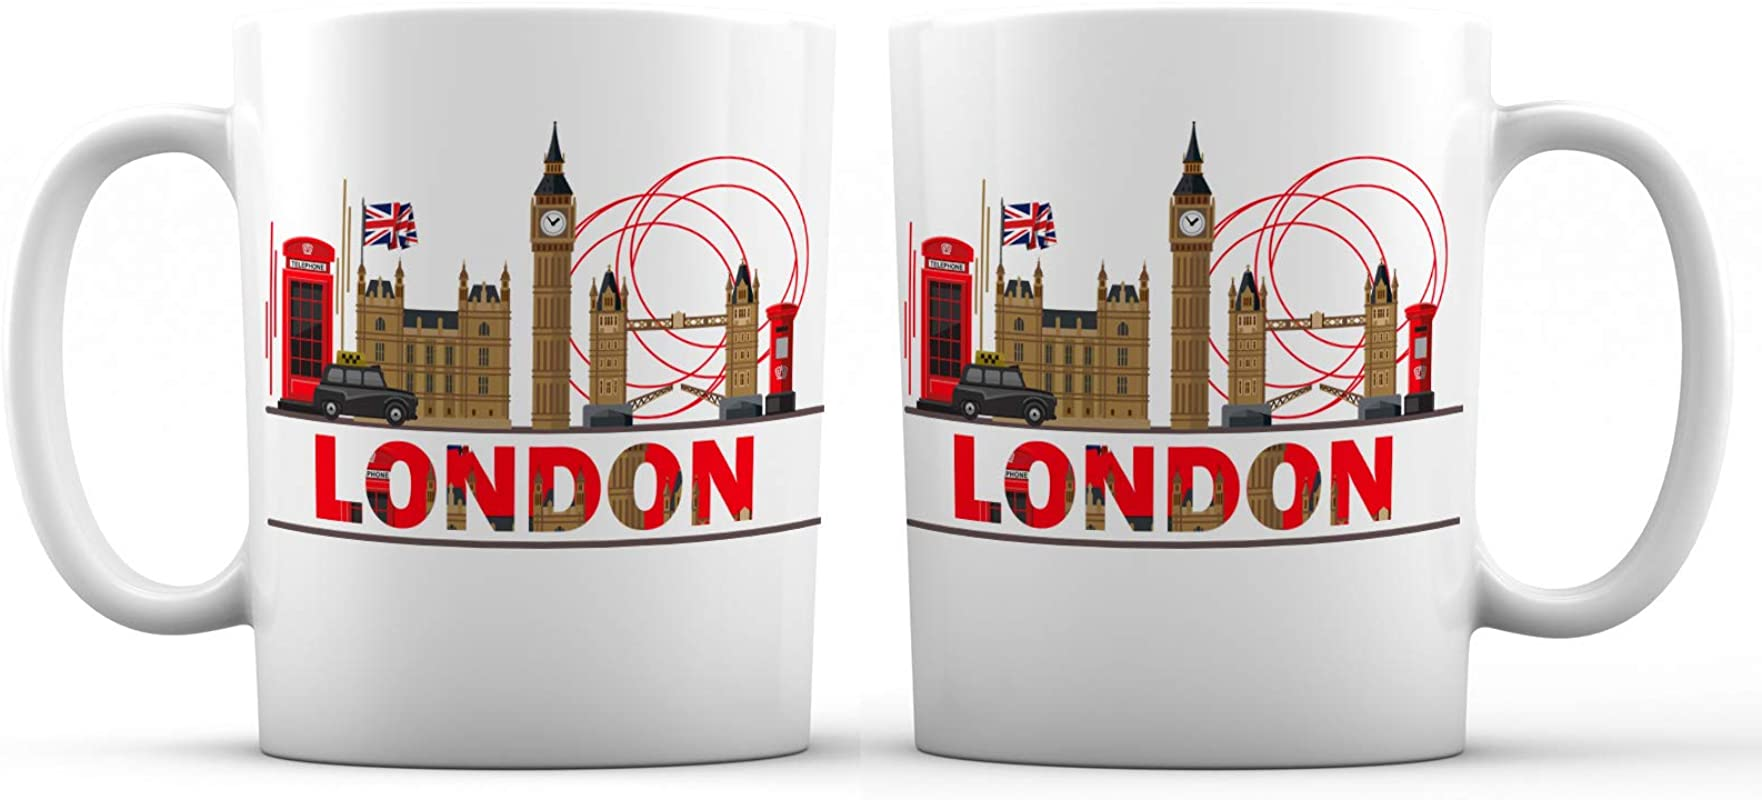 London City View Ceramic Coffee Mug 11 Oz Awesome New Design Decorative Souvenir Gift Cup For Visiting Friends Tourists Men And Women England